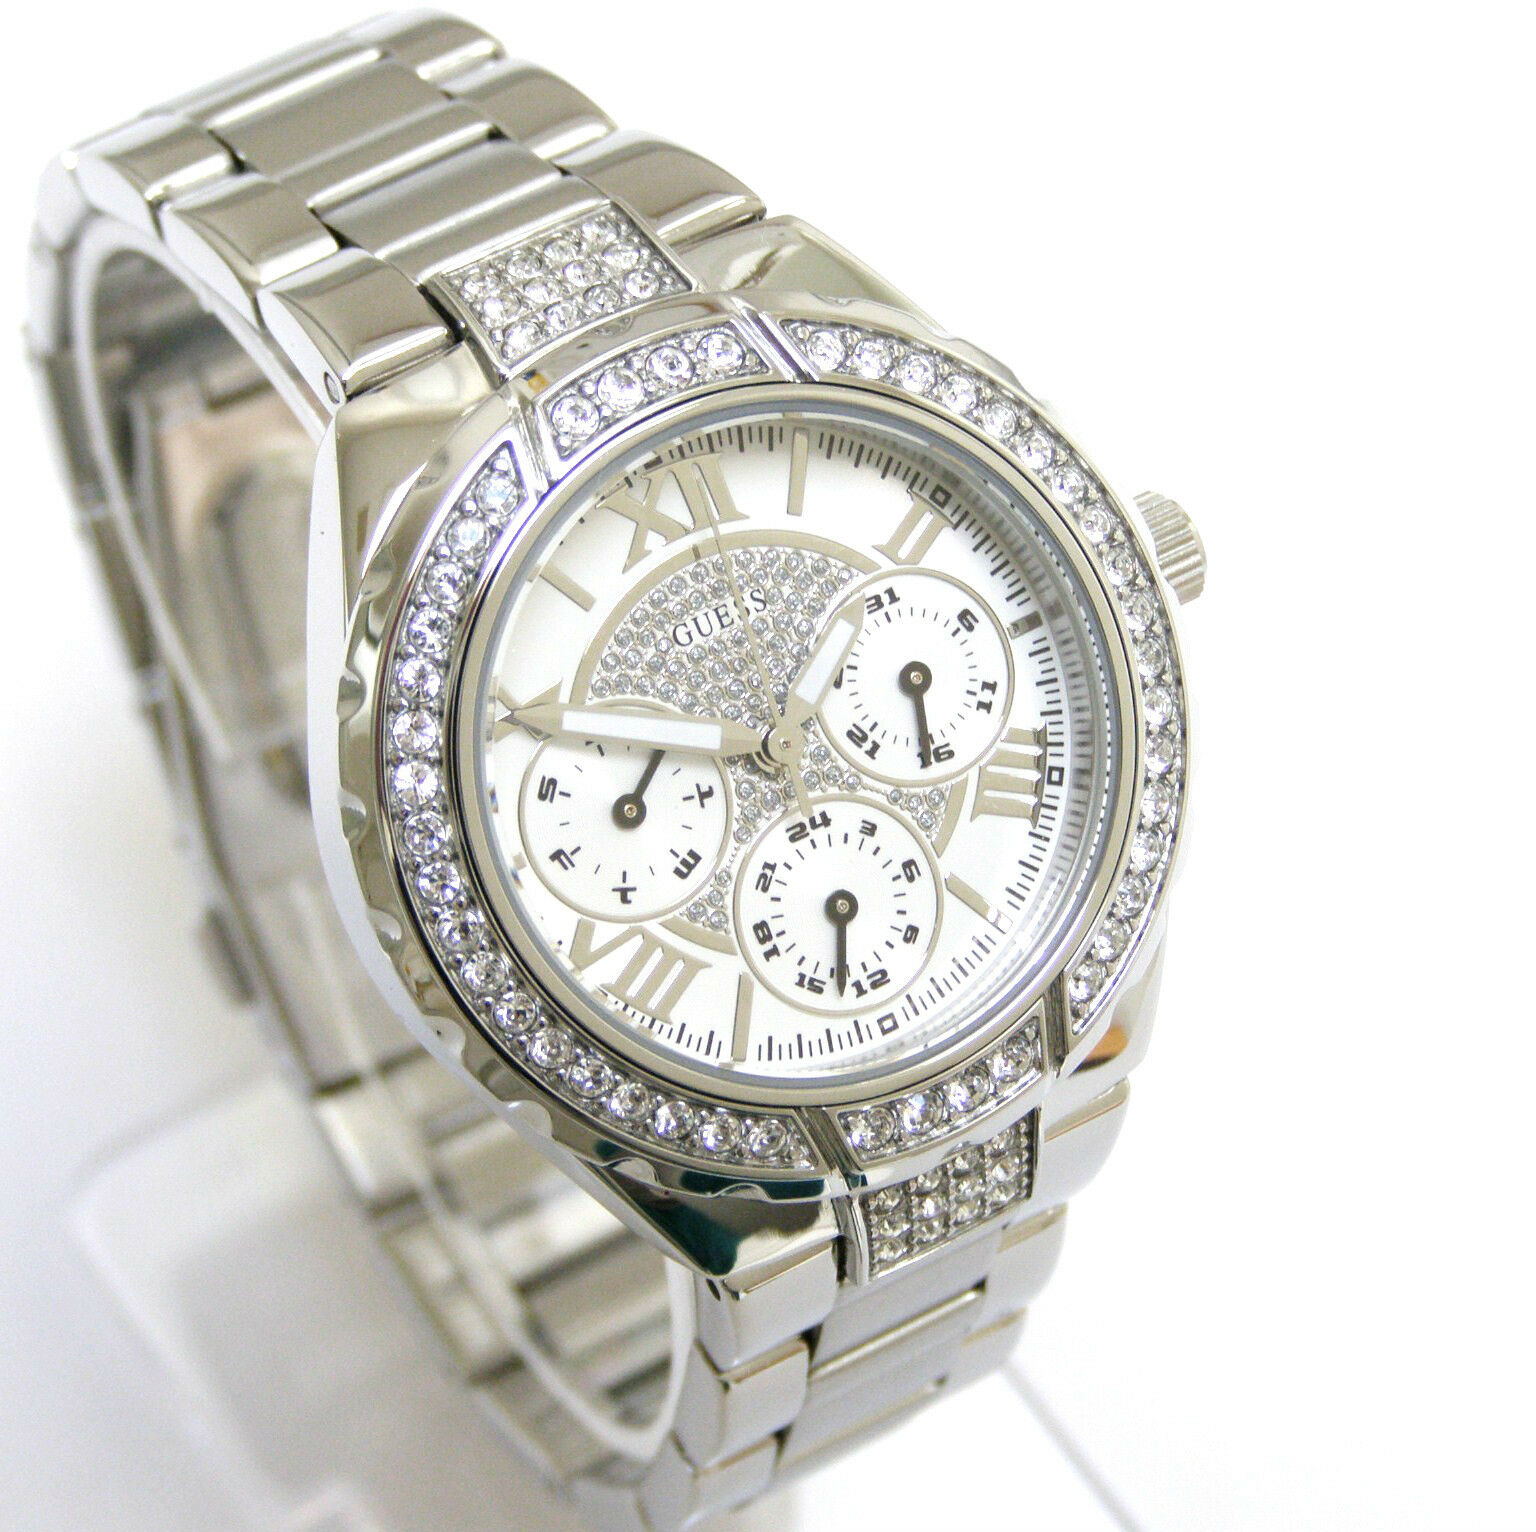 Guess Women Watch Crystals Multiple Dial Silver Face